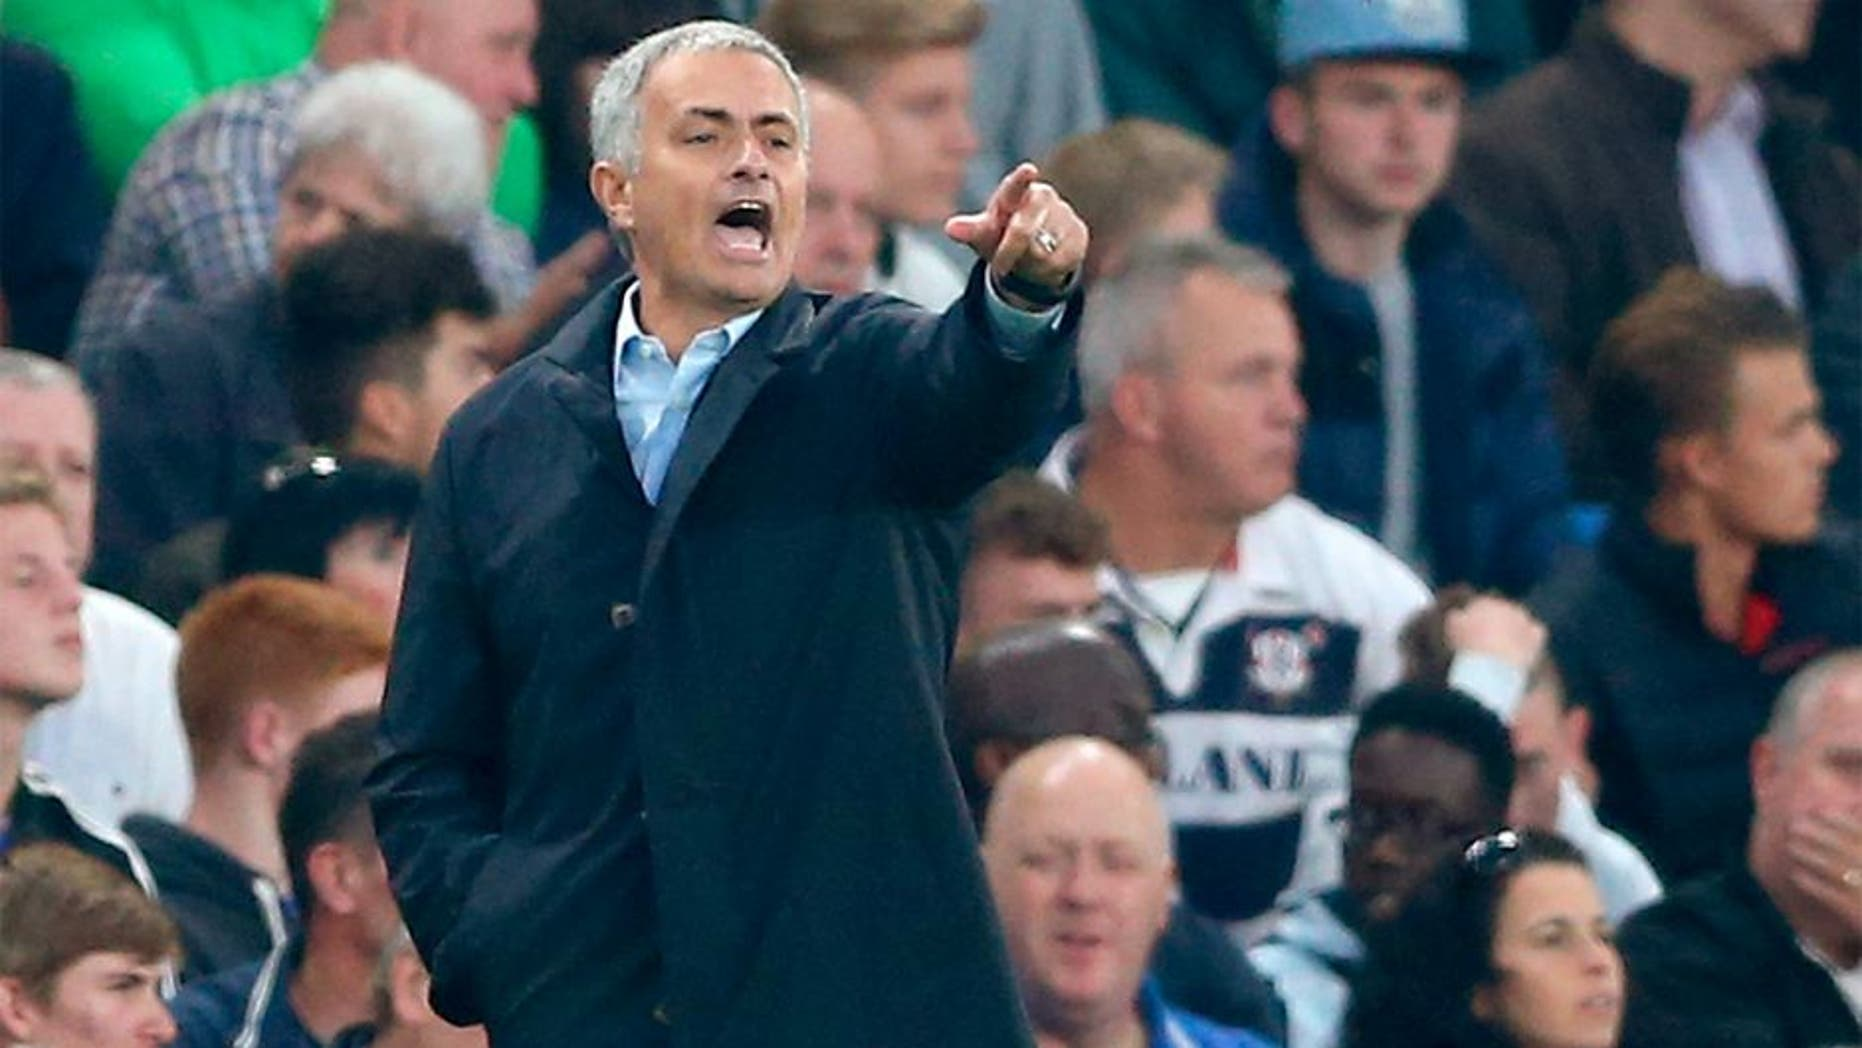 Chelsea's Portuguese manager Jose Mourinho gestures during the English Premier League football match between Chelsea and Southampton at Stamford Bridge in London on October 3, 2015. AFP PHOTO / JUSTIN TALLIS RESTRICTED TO EDITORIAL USE. No use with unauthorized audio, video, data, fixture lists, club/league logos or 'live' services. Online in-match use limited to 75 images, no video emulation. No use in betting, games or single club/league/player publications. (Photo credit should read JUSTIN TALLIS/AFP/Getty Images)